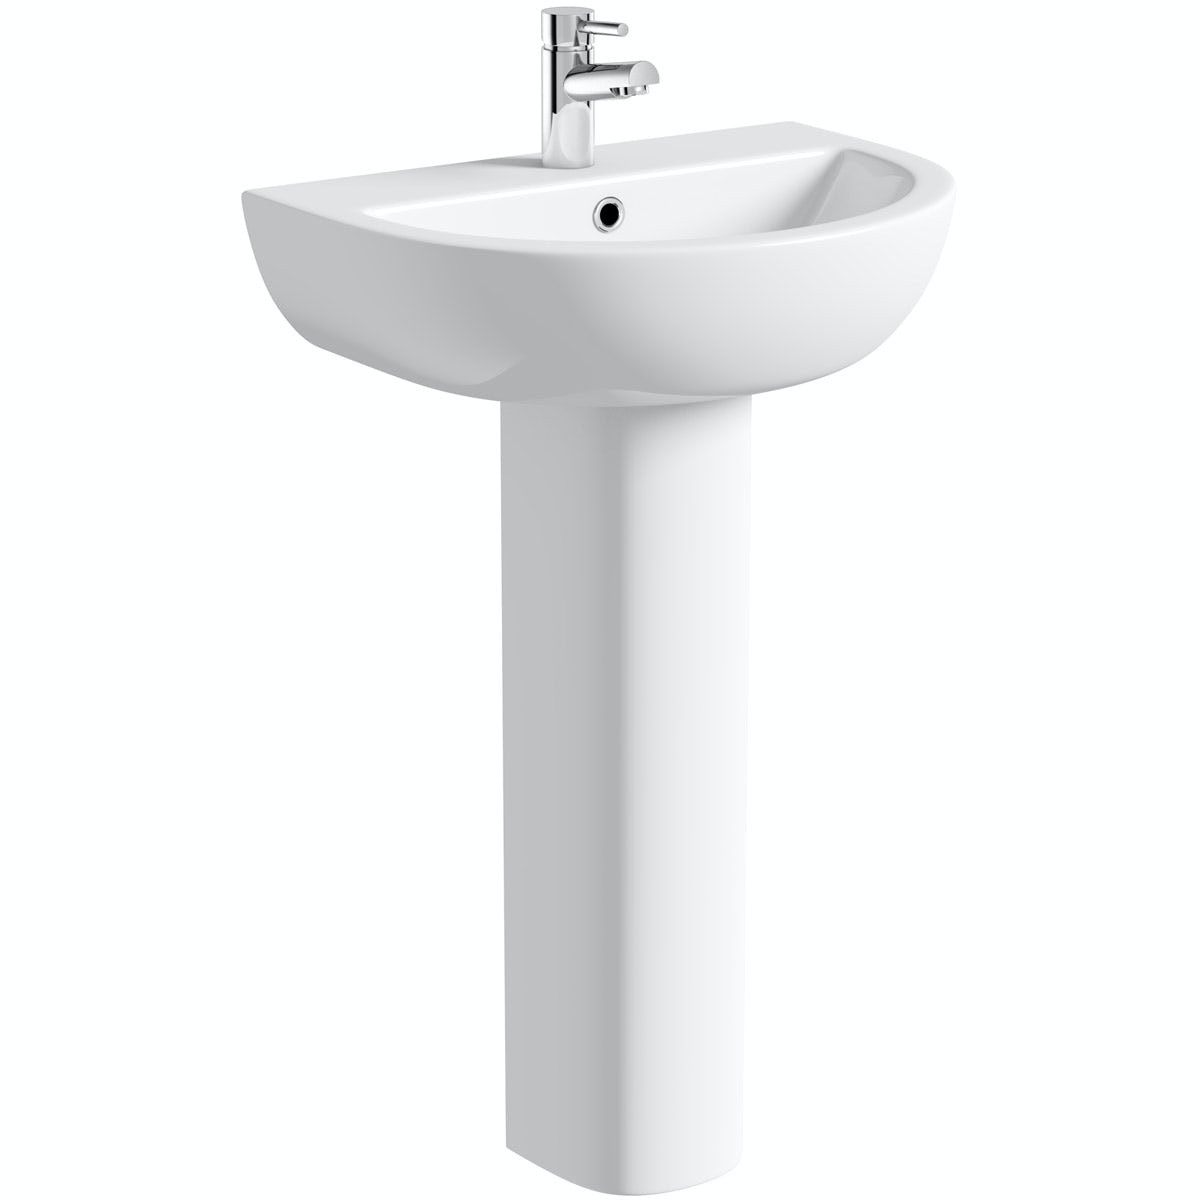 Orchard Elena 1 tap hole full pedestal basin